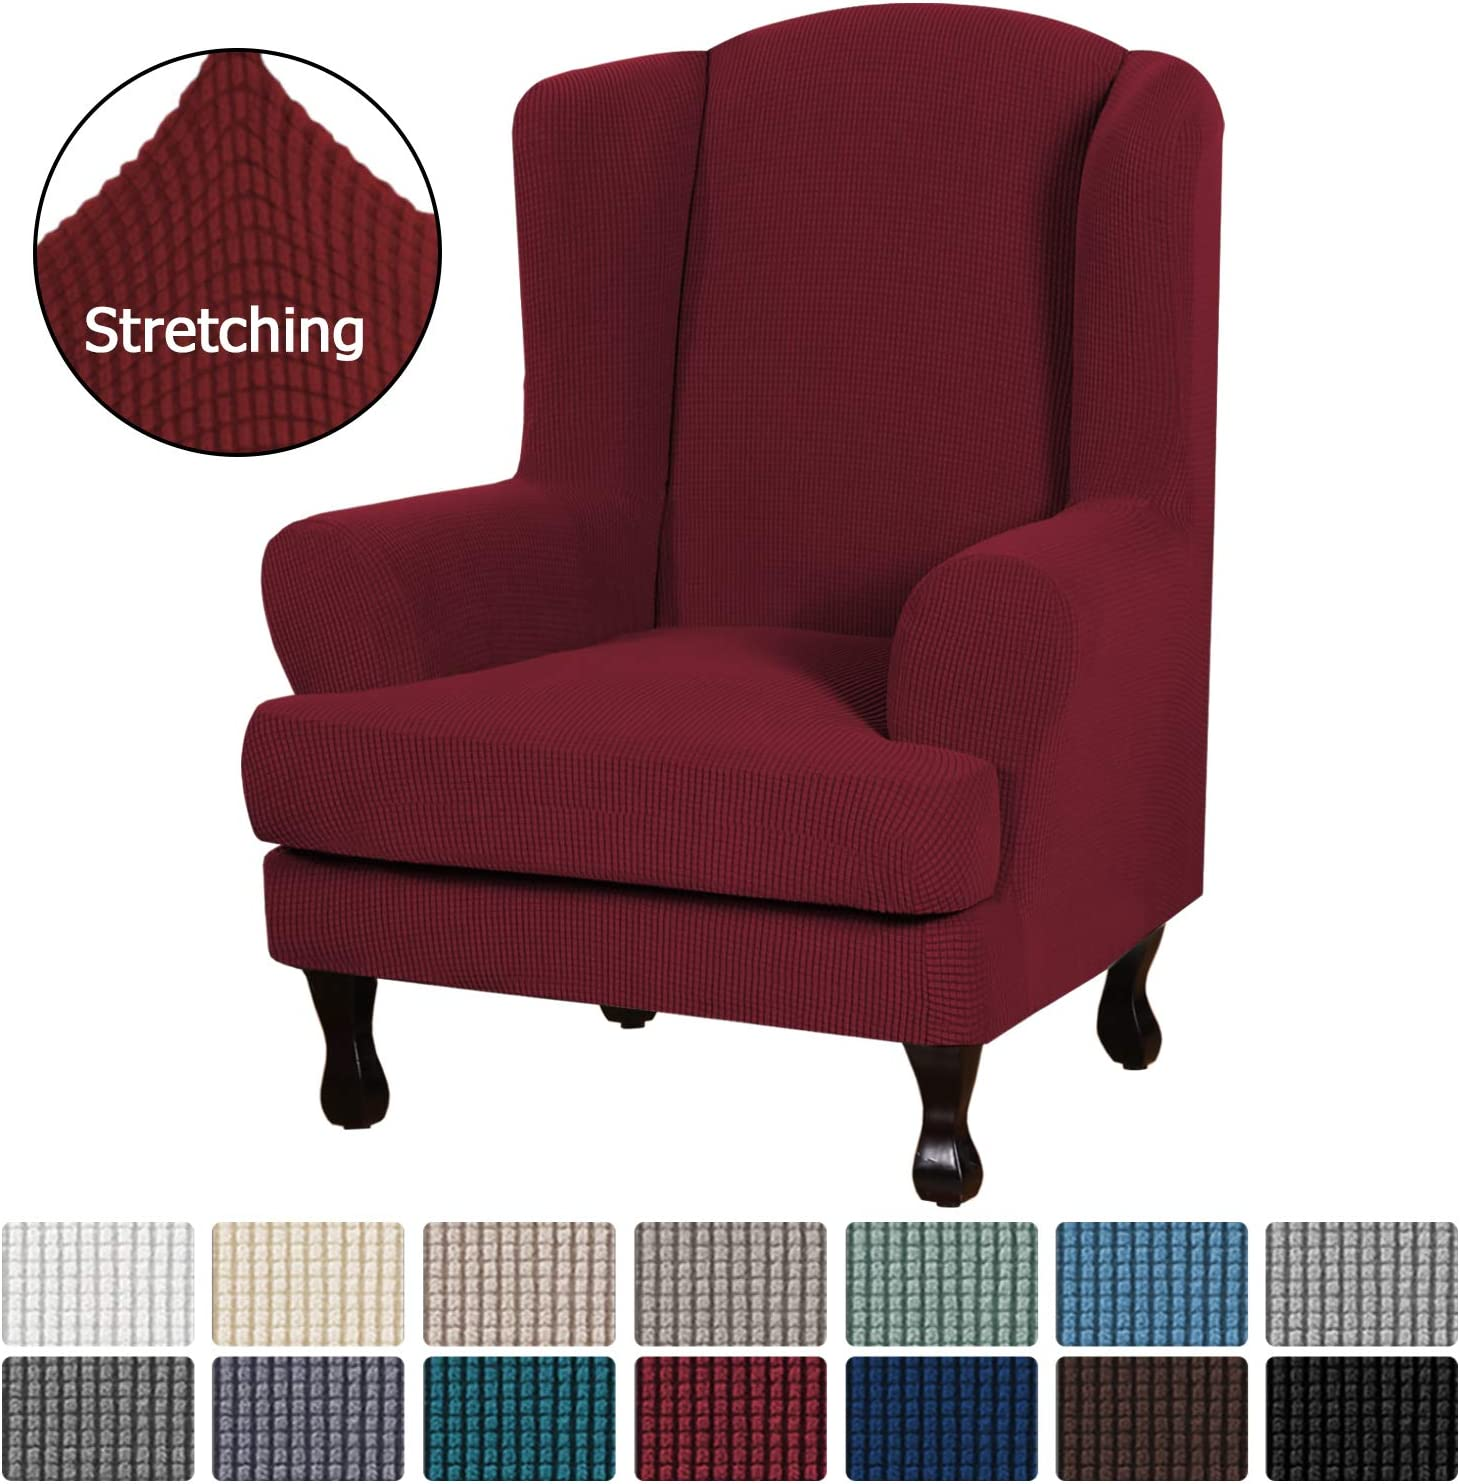 Machine Washable Slip Resistant Stylish Wingback Chair Cover 2 Piece with Elastic Bottom Black H.VERSAILTEX Stretch Wing Chair Cover Jacquard Spandex Stretch Slipcovers for Wingback Chairs